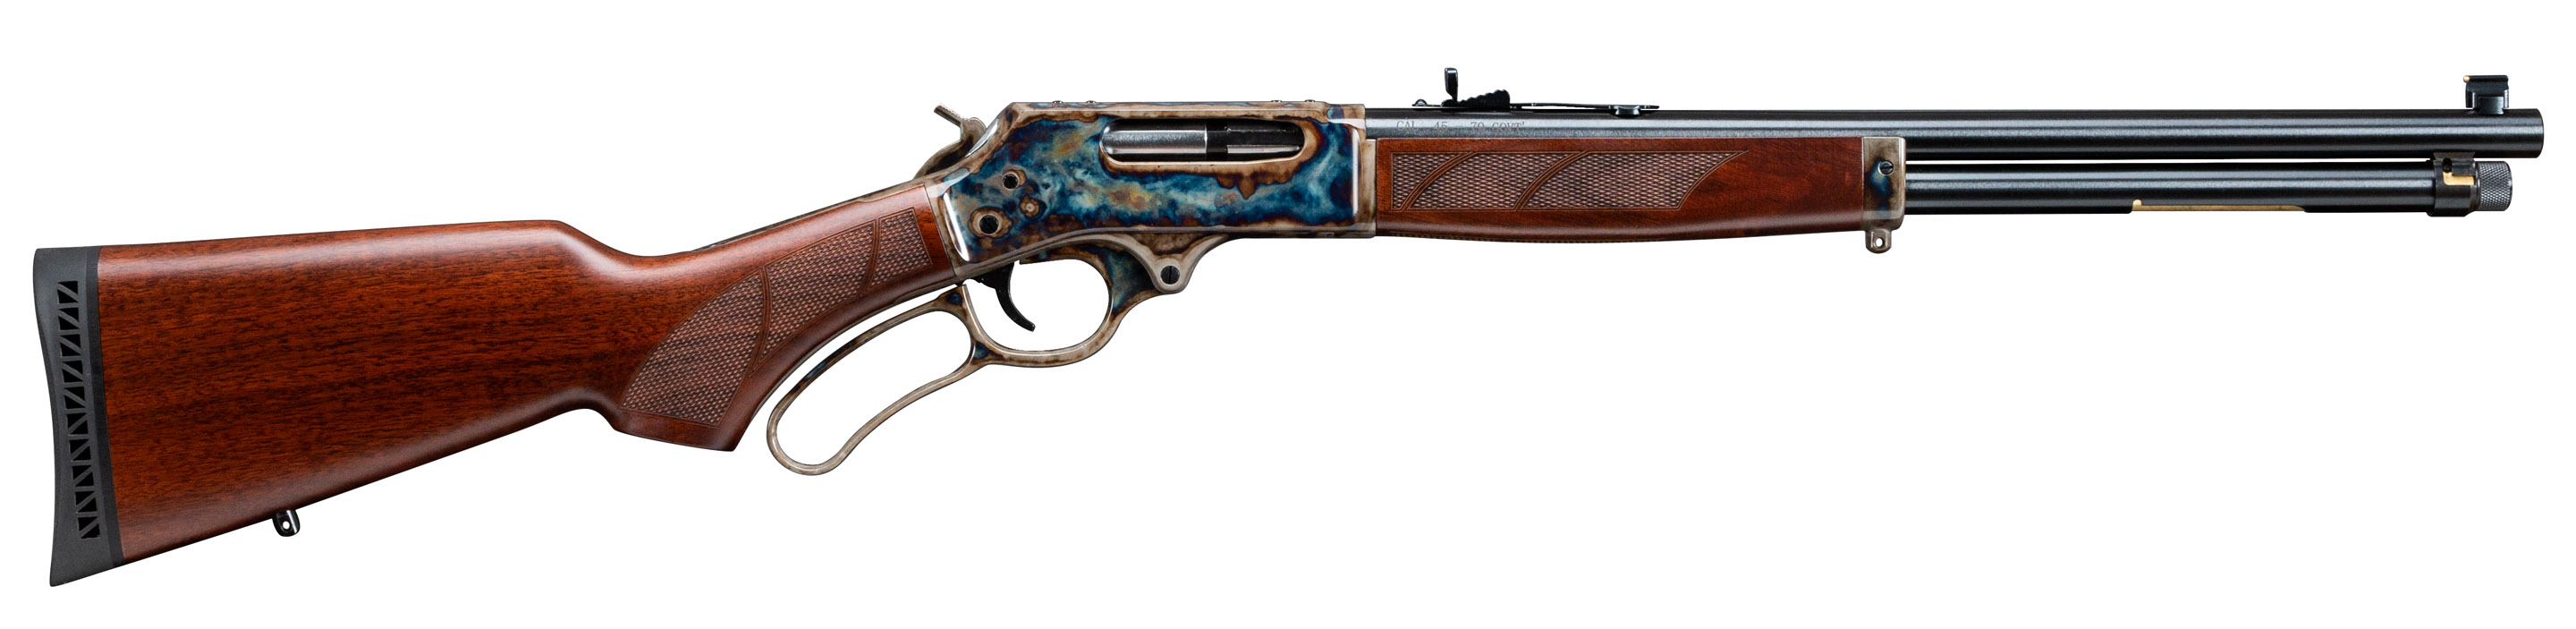 Photograph of a Henry Repeating Arms - Turnbull Restoration limited edition .45-70, featuring Turnbull's bone charcoal color case hardening